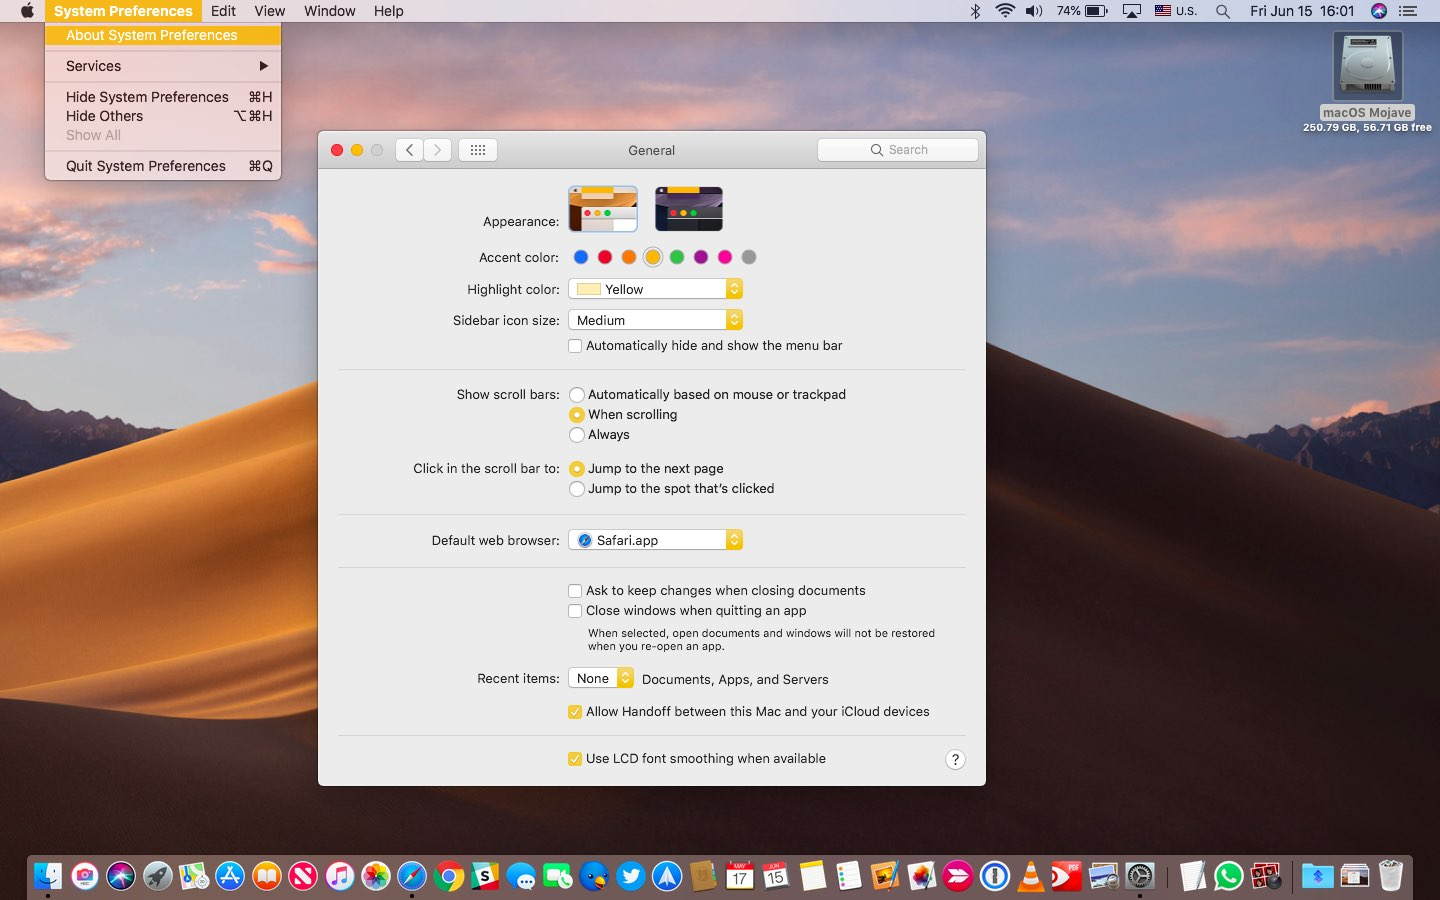 macOS Mojave Light Mode with the yellow accent and highlight color